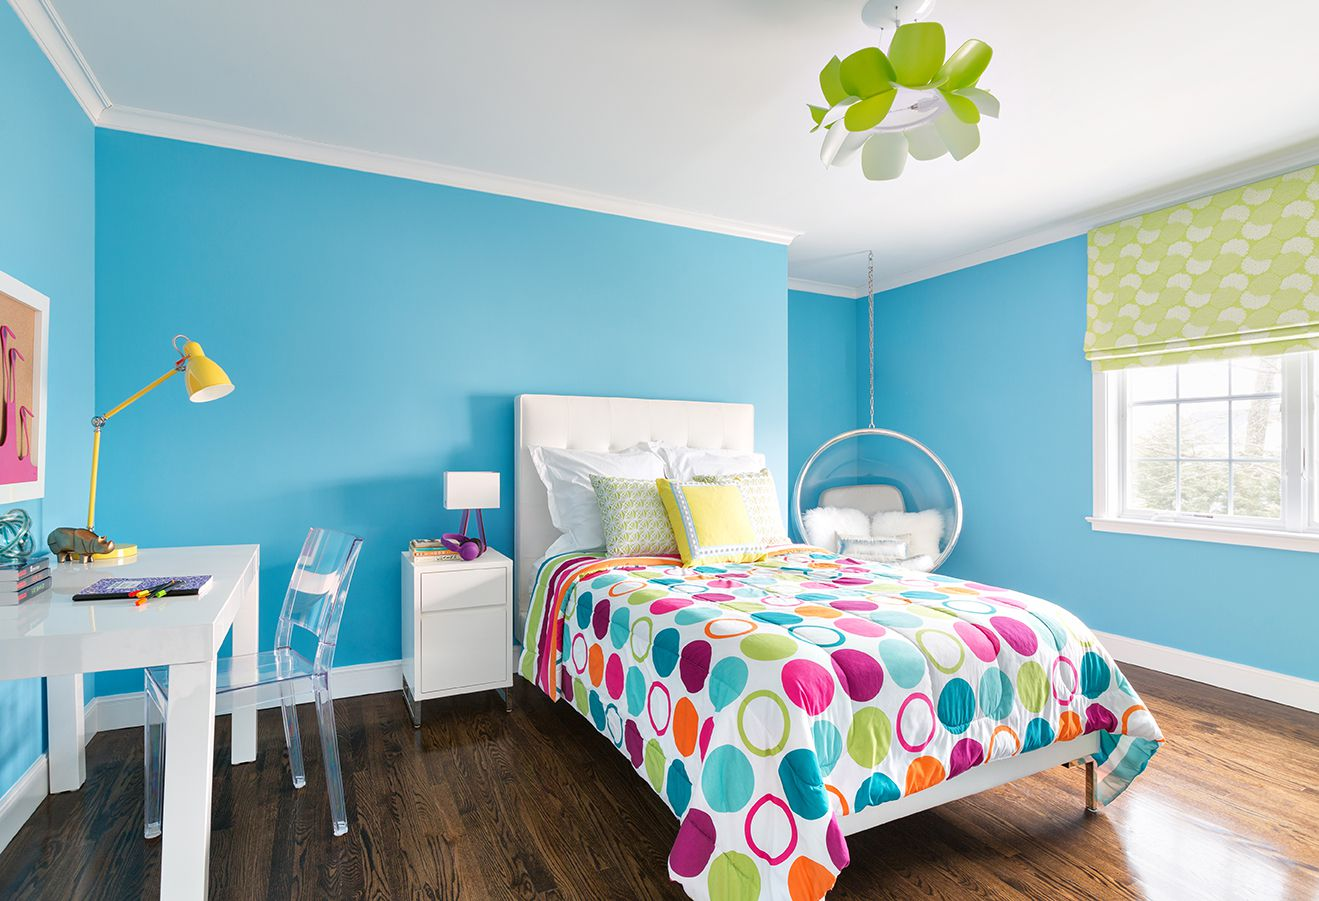 Ordinaire Dazzling Decoration For Teenage Bedroom Ideas With Blue Paint Color  Combined With White Stuffs